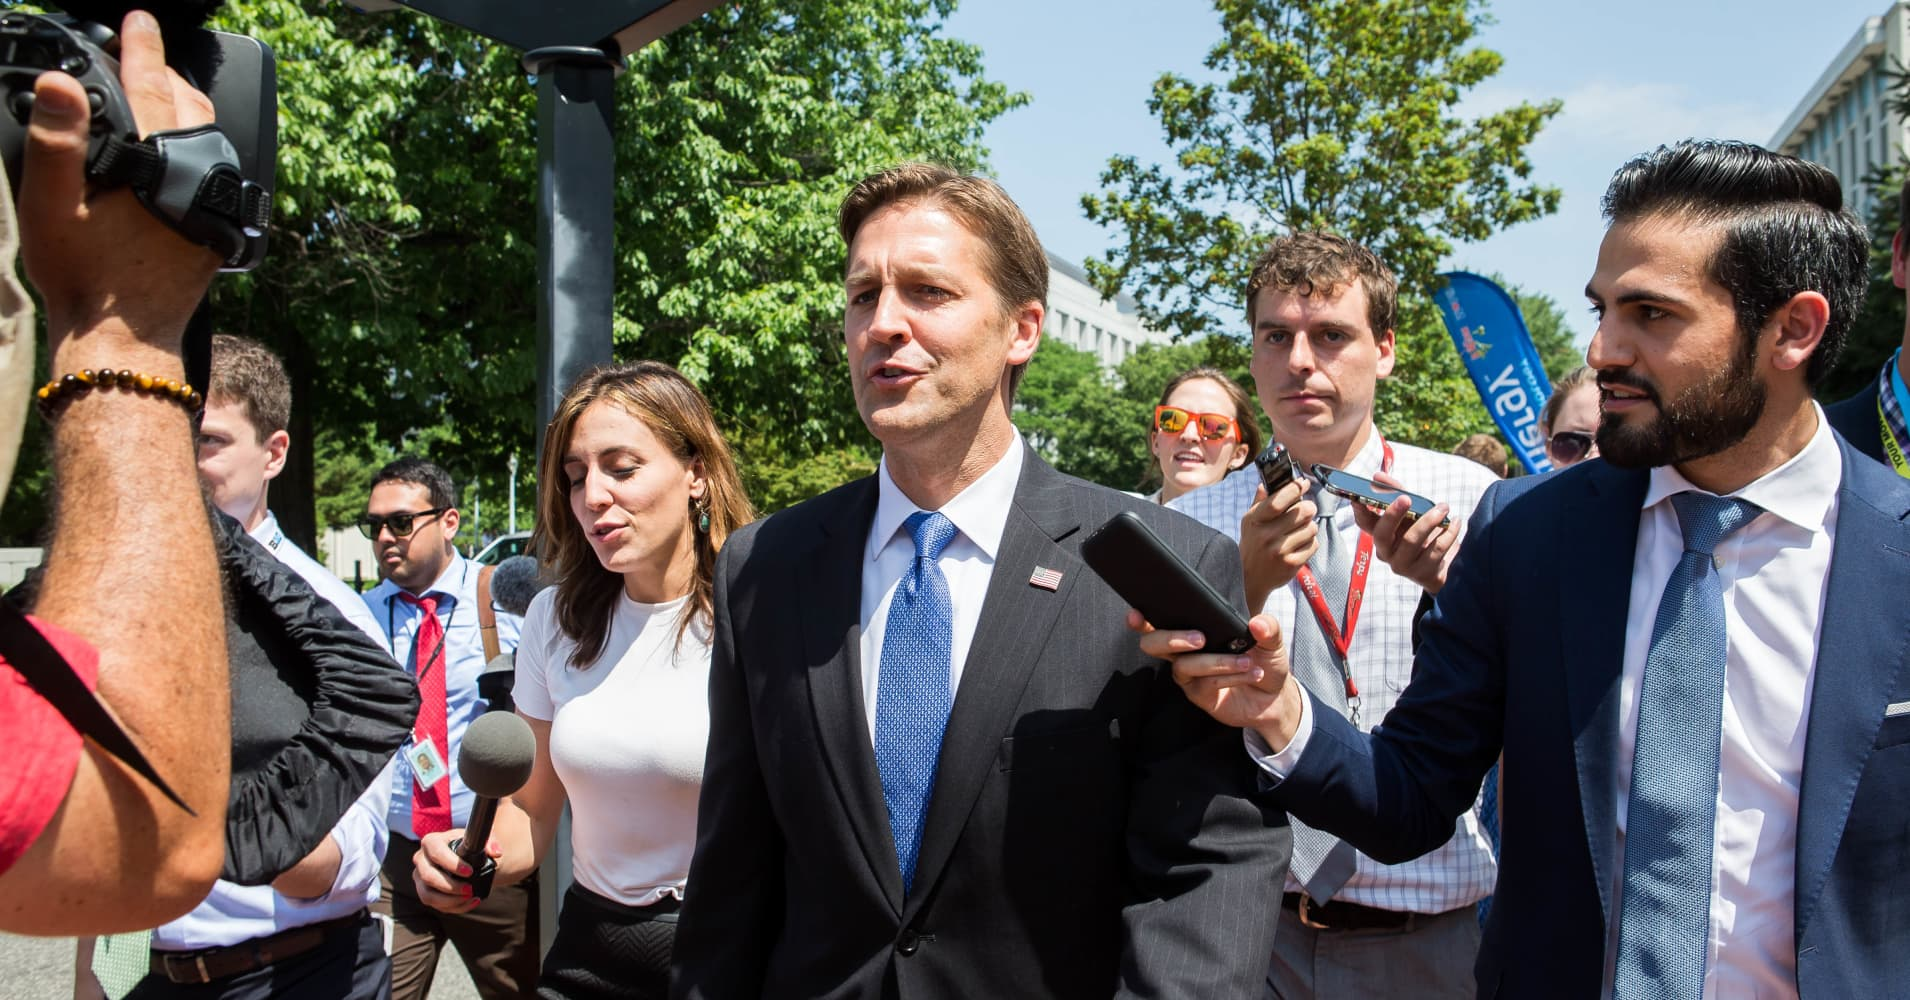 An Uber customer was surprised to see that her driver was Sen. Ben Sasse (R-NE).